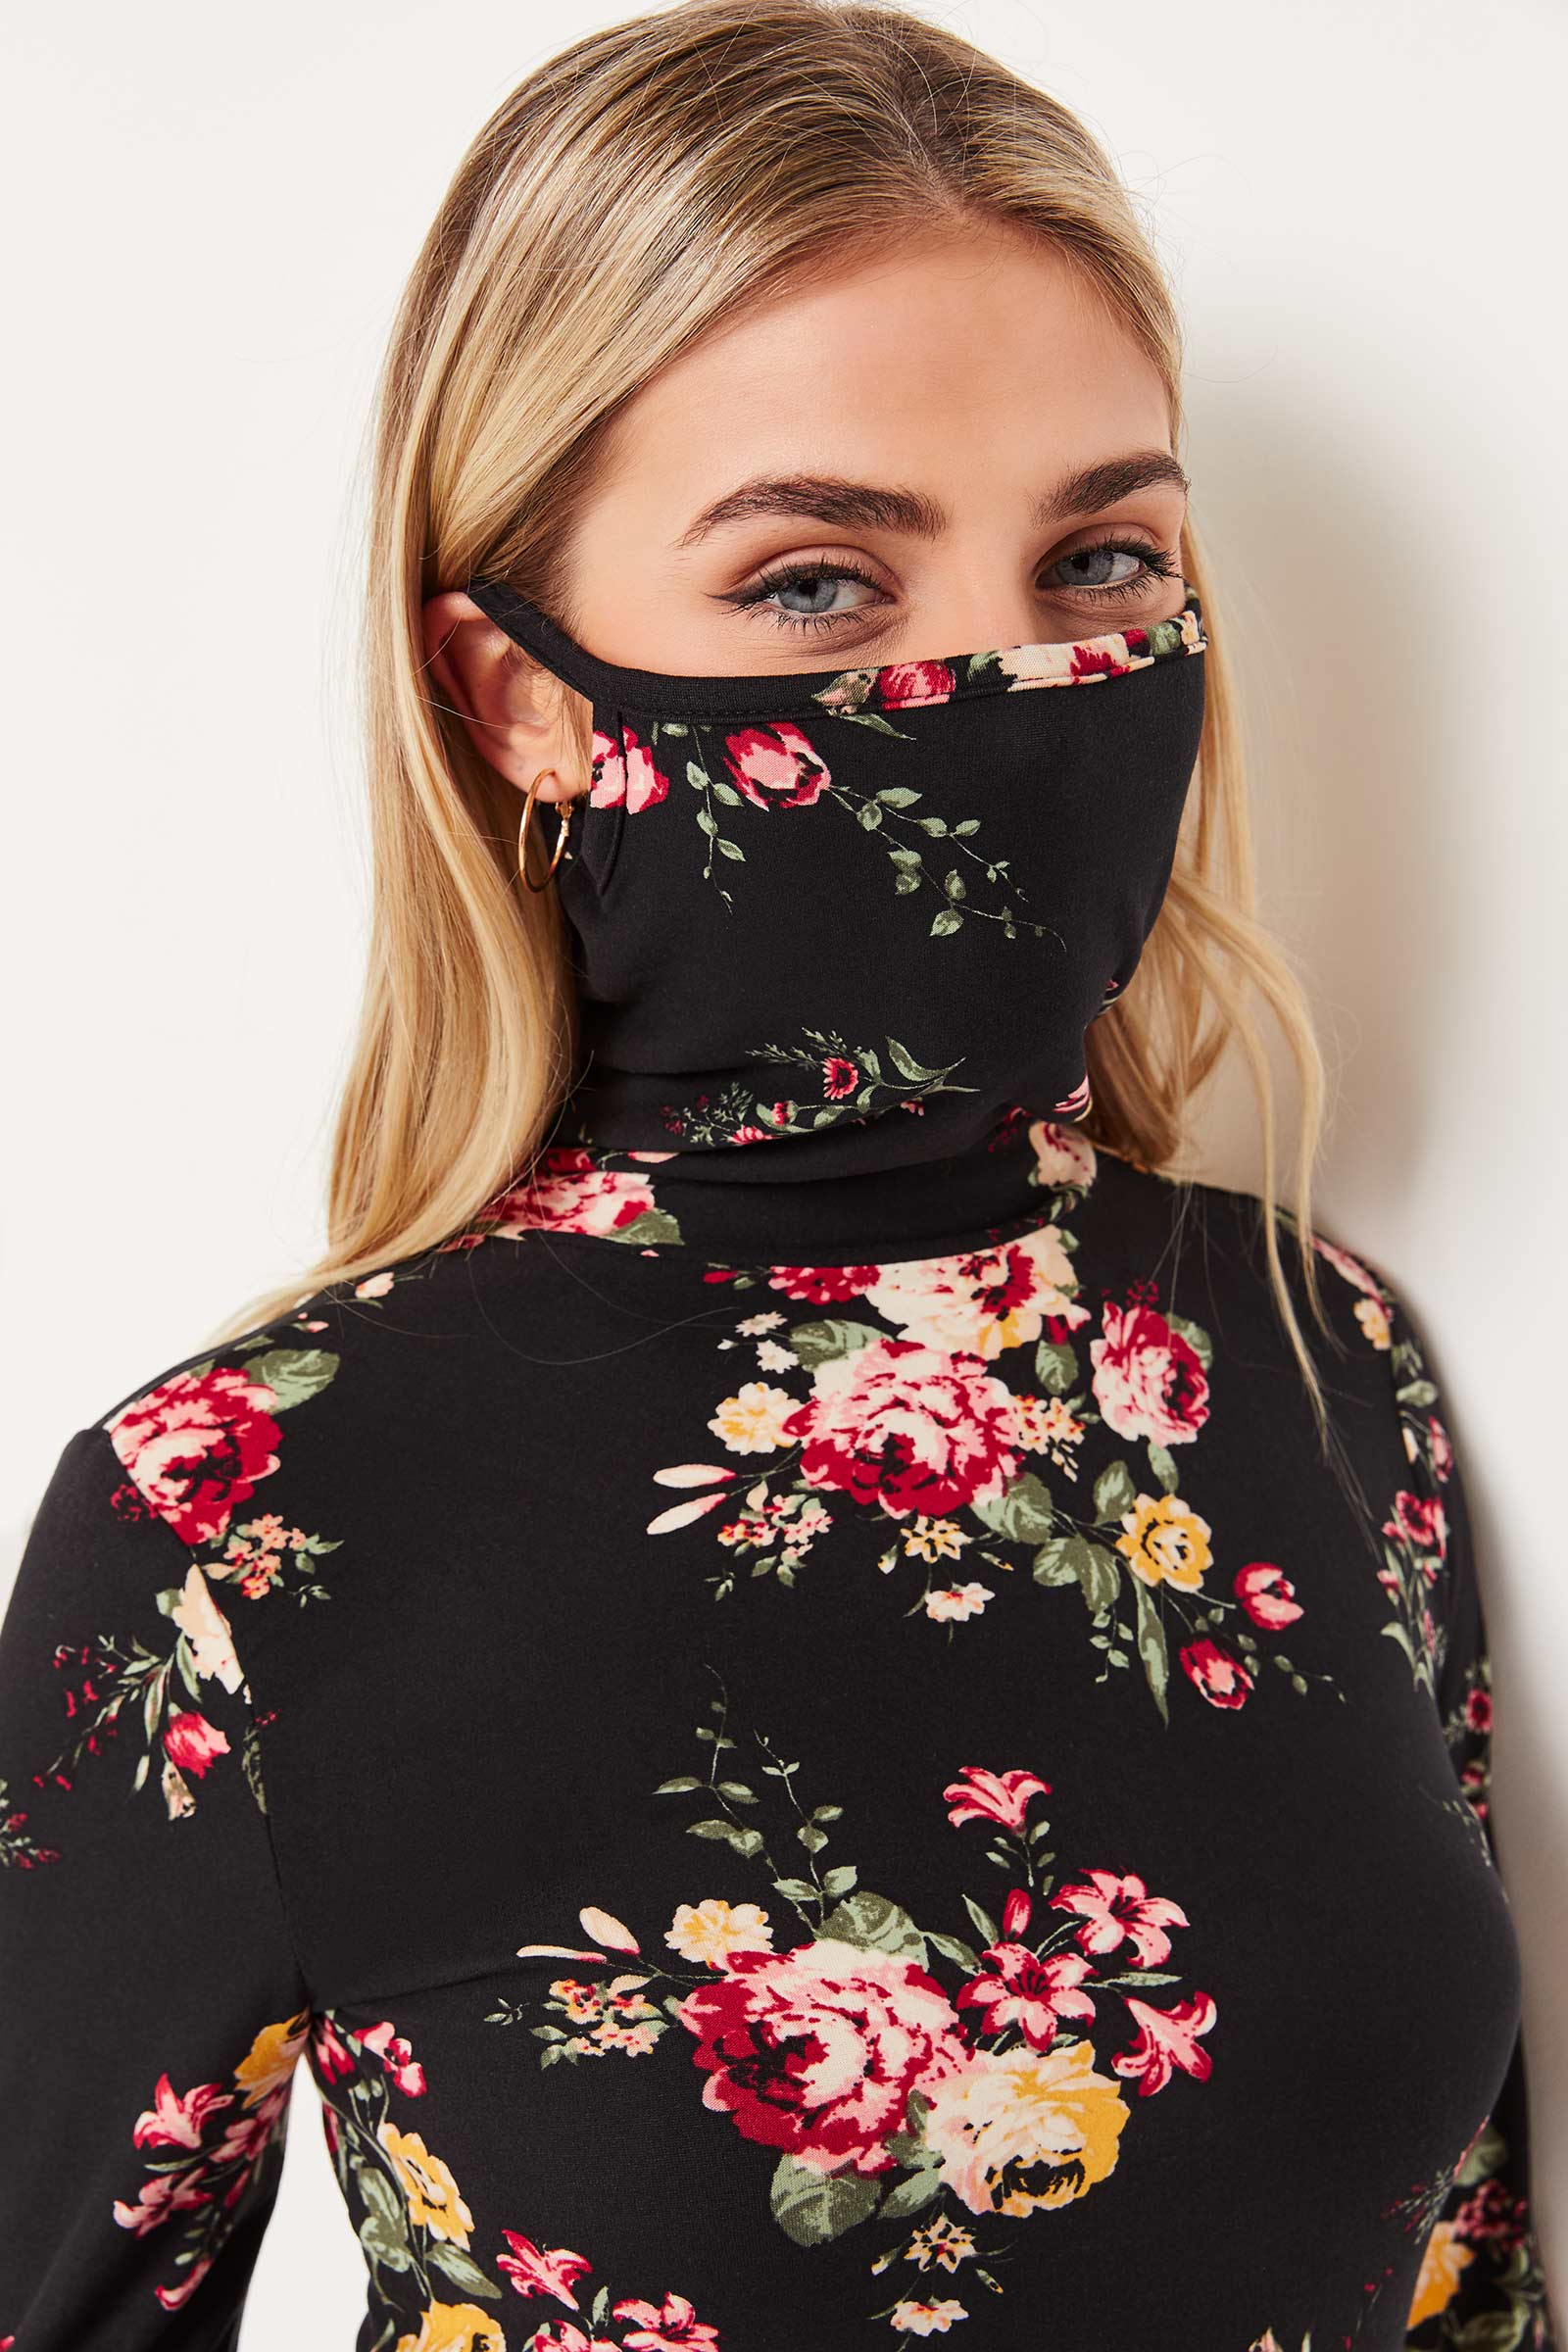 Floral Top with Integrated Mask